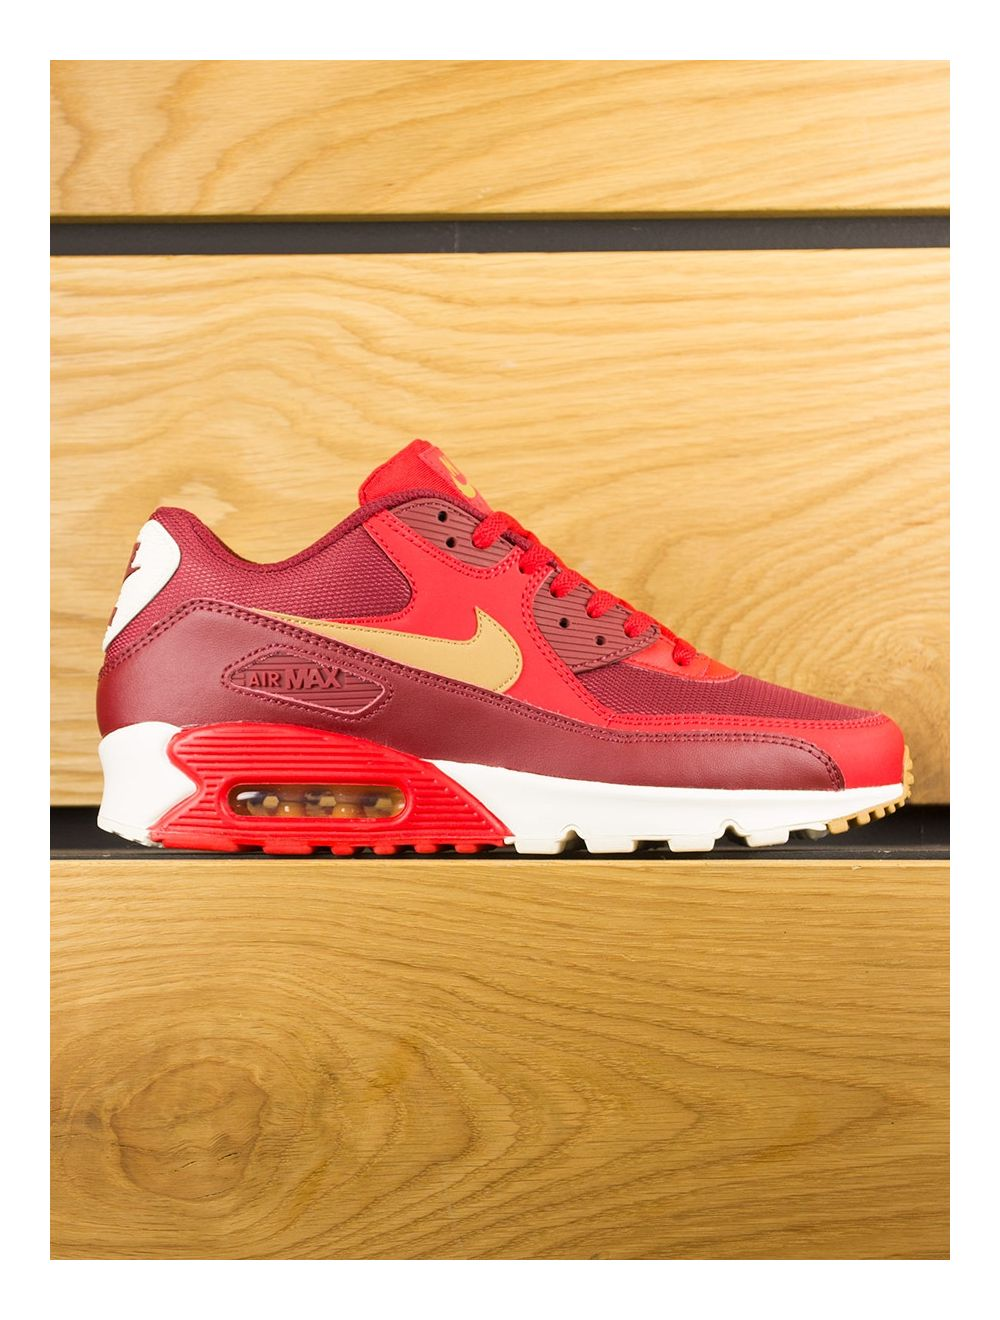 meet 10492 08484 Nike Air Max 90 Essential - Game Red Elemental Gold